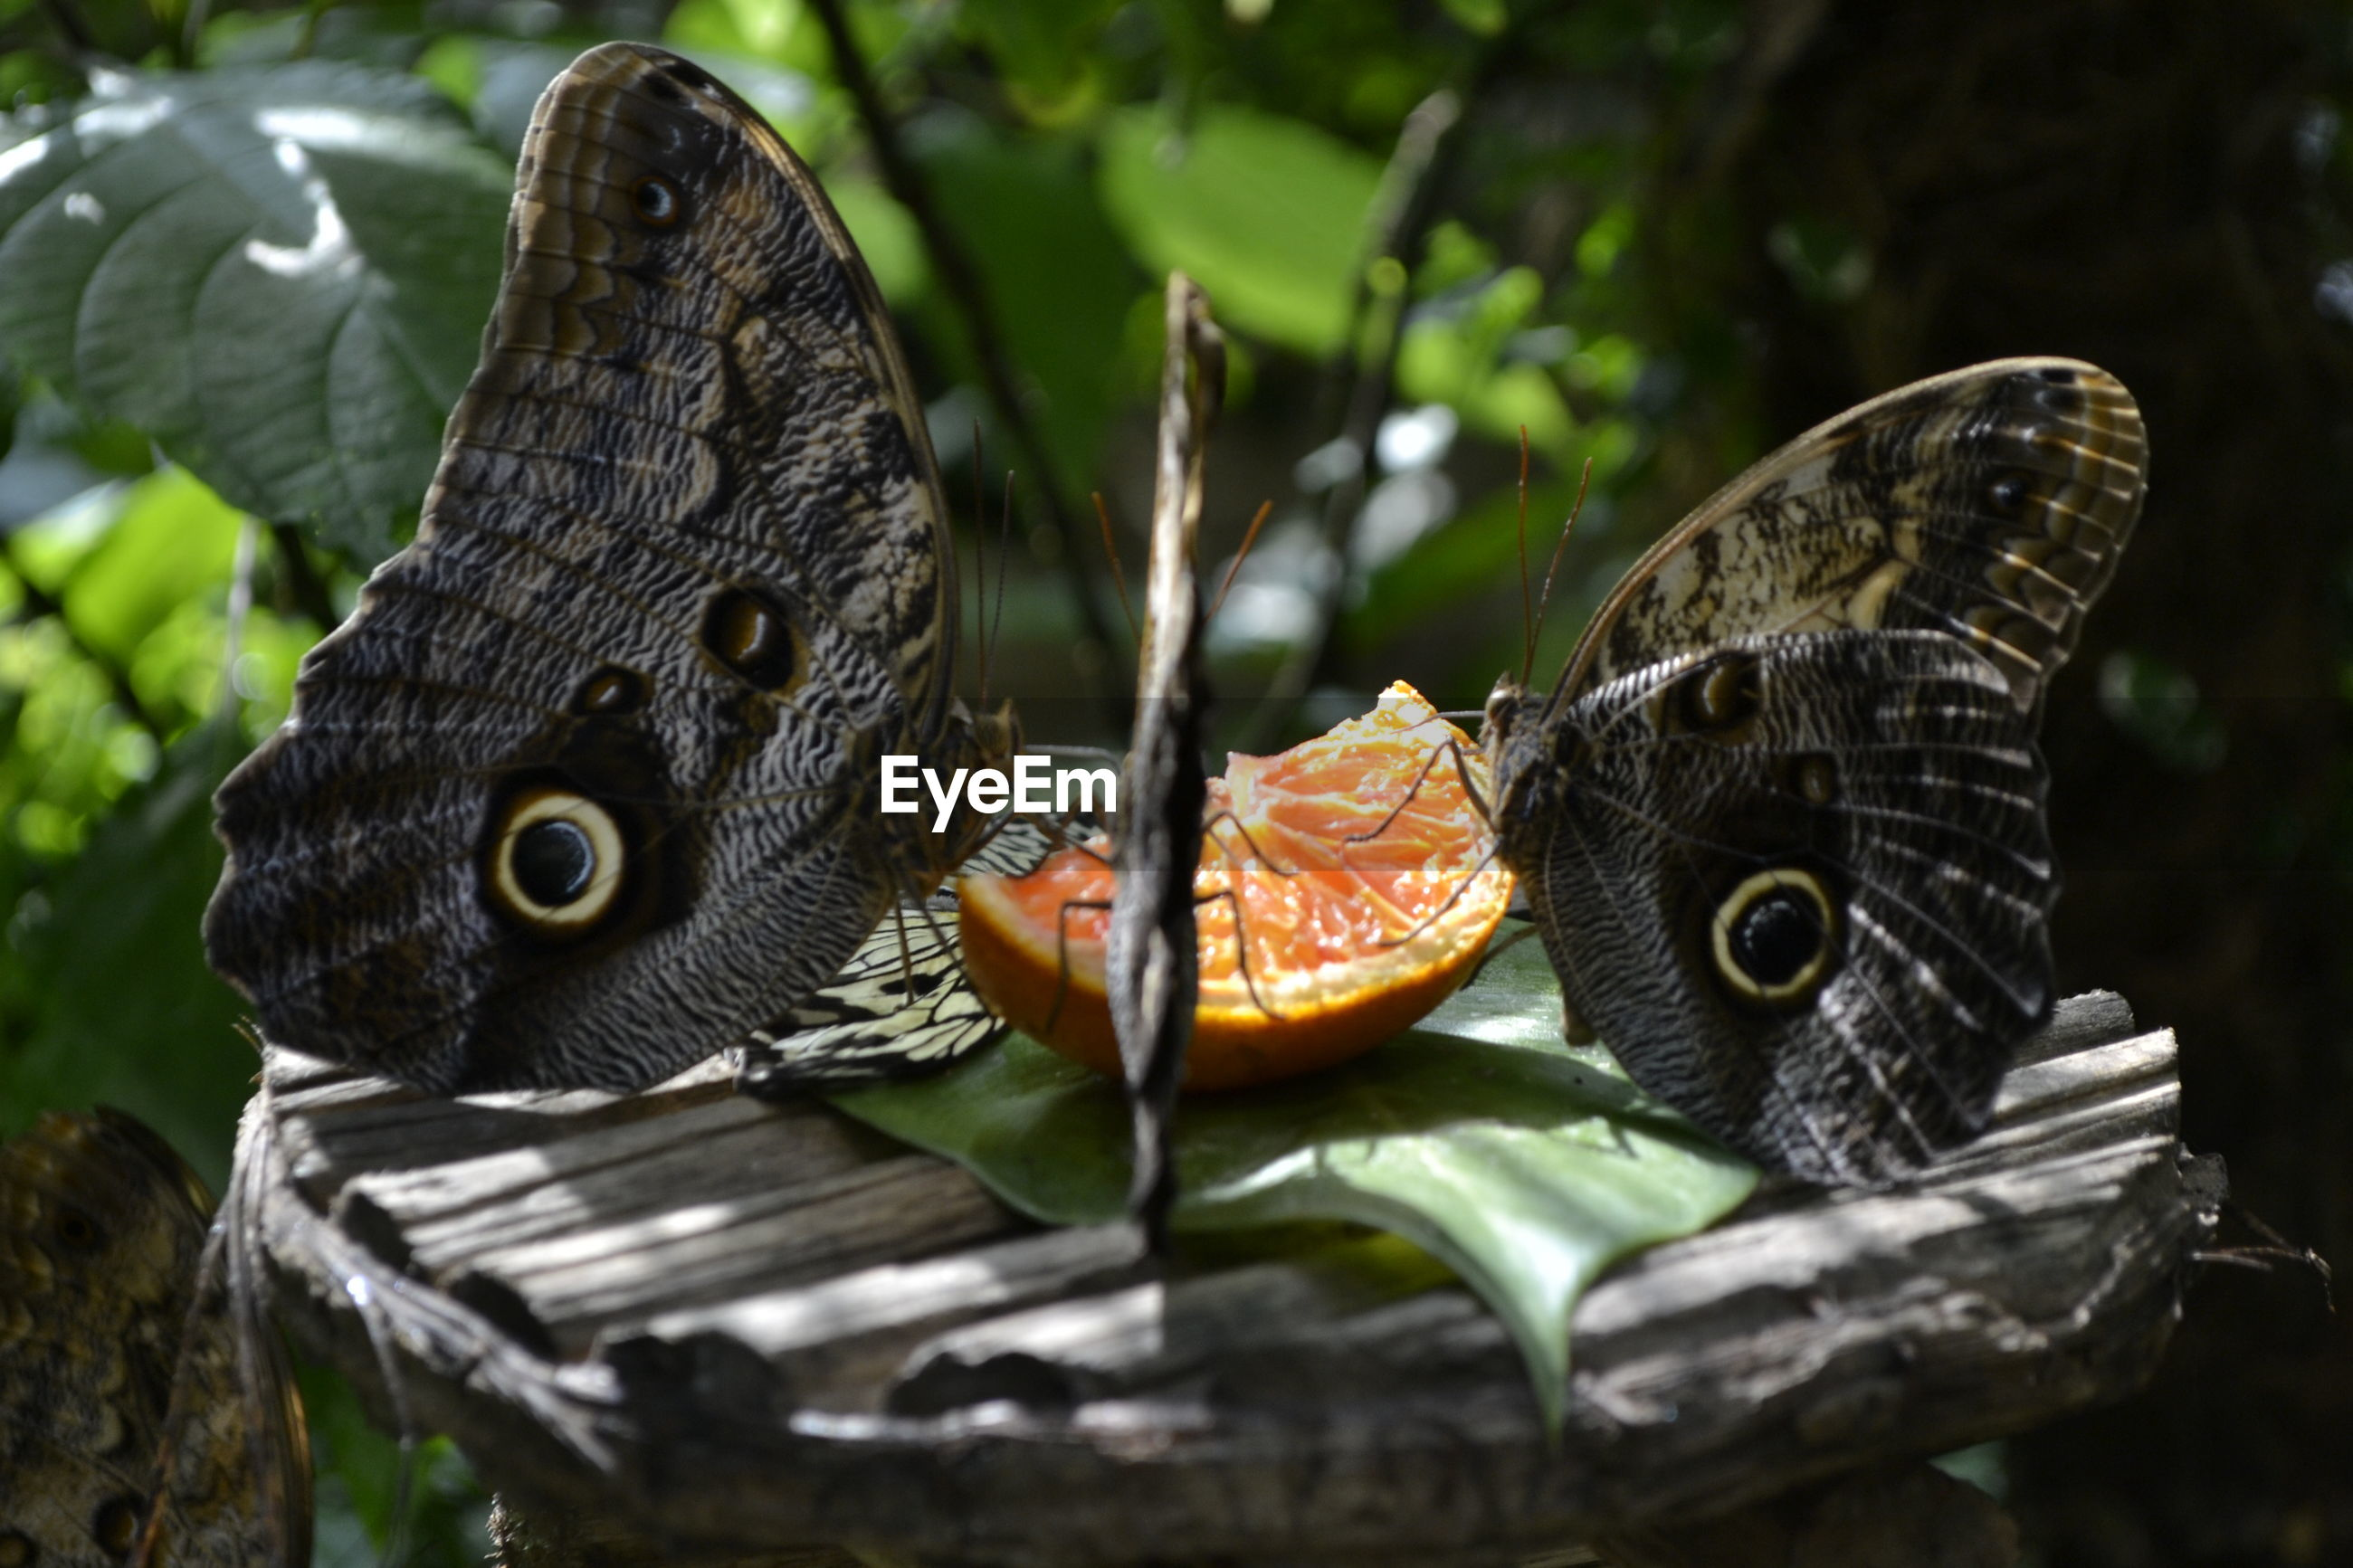 animal themes, animals in the wild, wildlife, one animal, close-up, focus on foreground, bird, animal markings, nature, beauty in nature, butterfly - insect, perching, two animals, natural pattern, outdoors, plant, day, side view, butterfly, no people